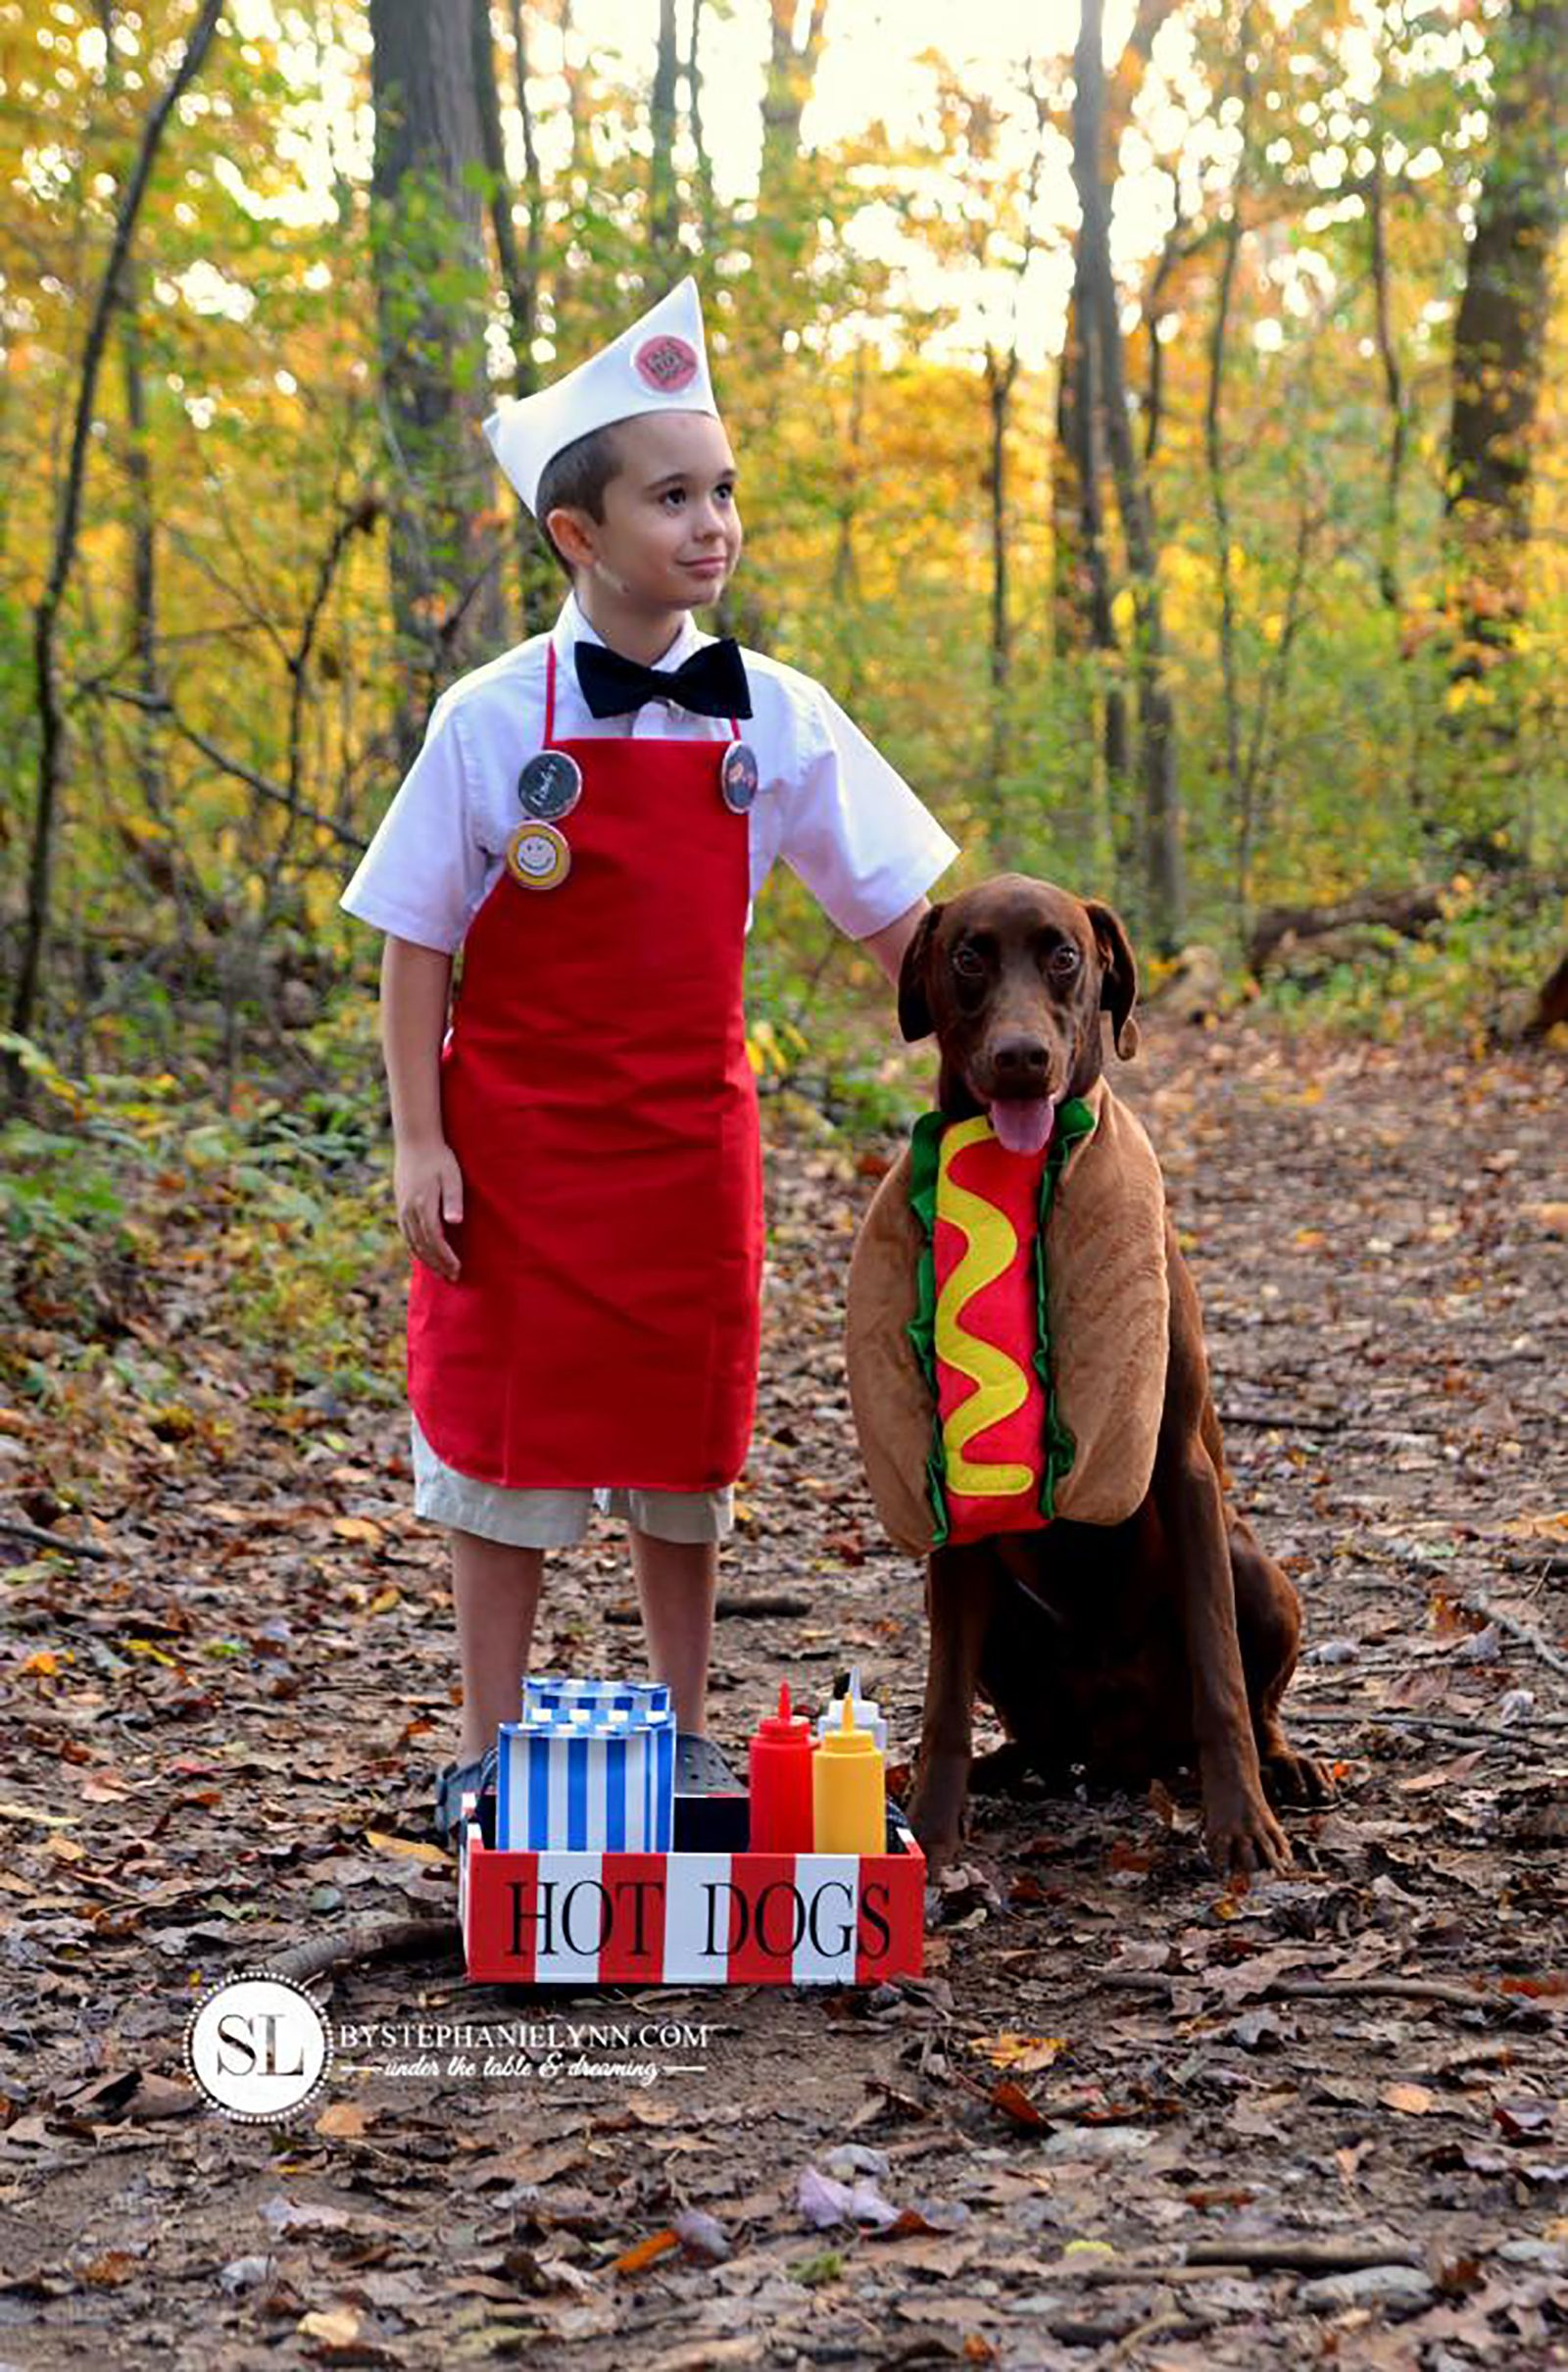 25 Best Dog and Owner Costumes , Matching Dog and Owner